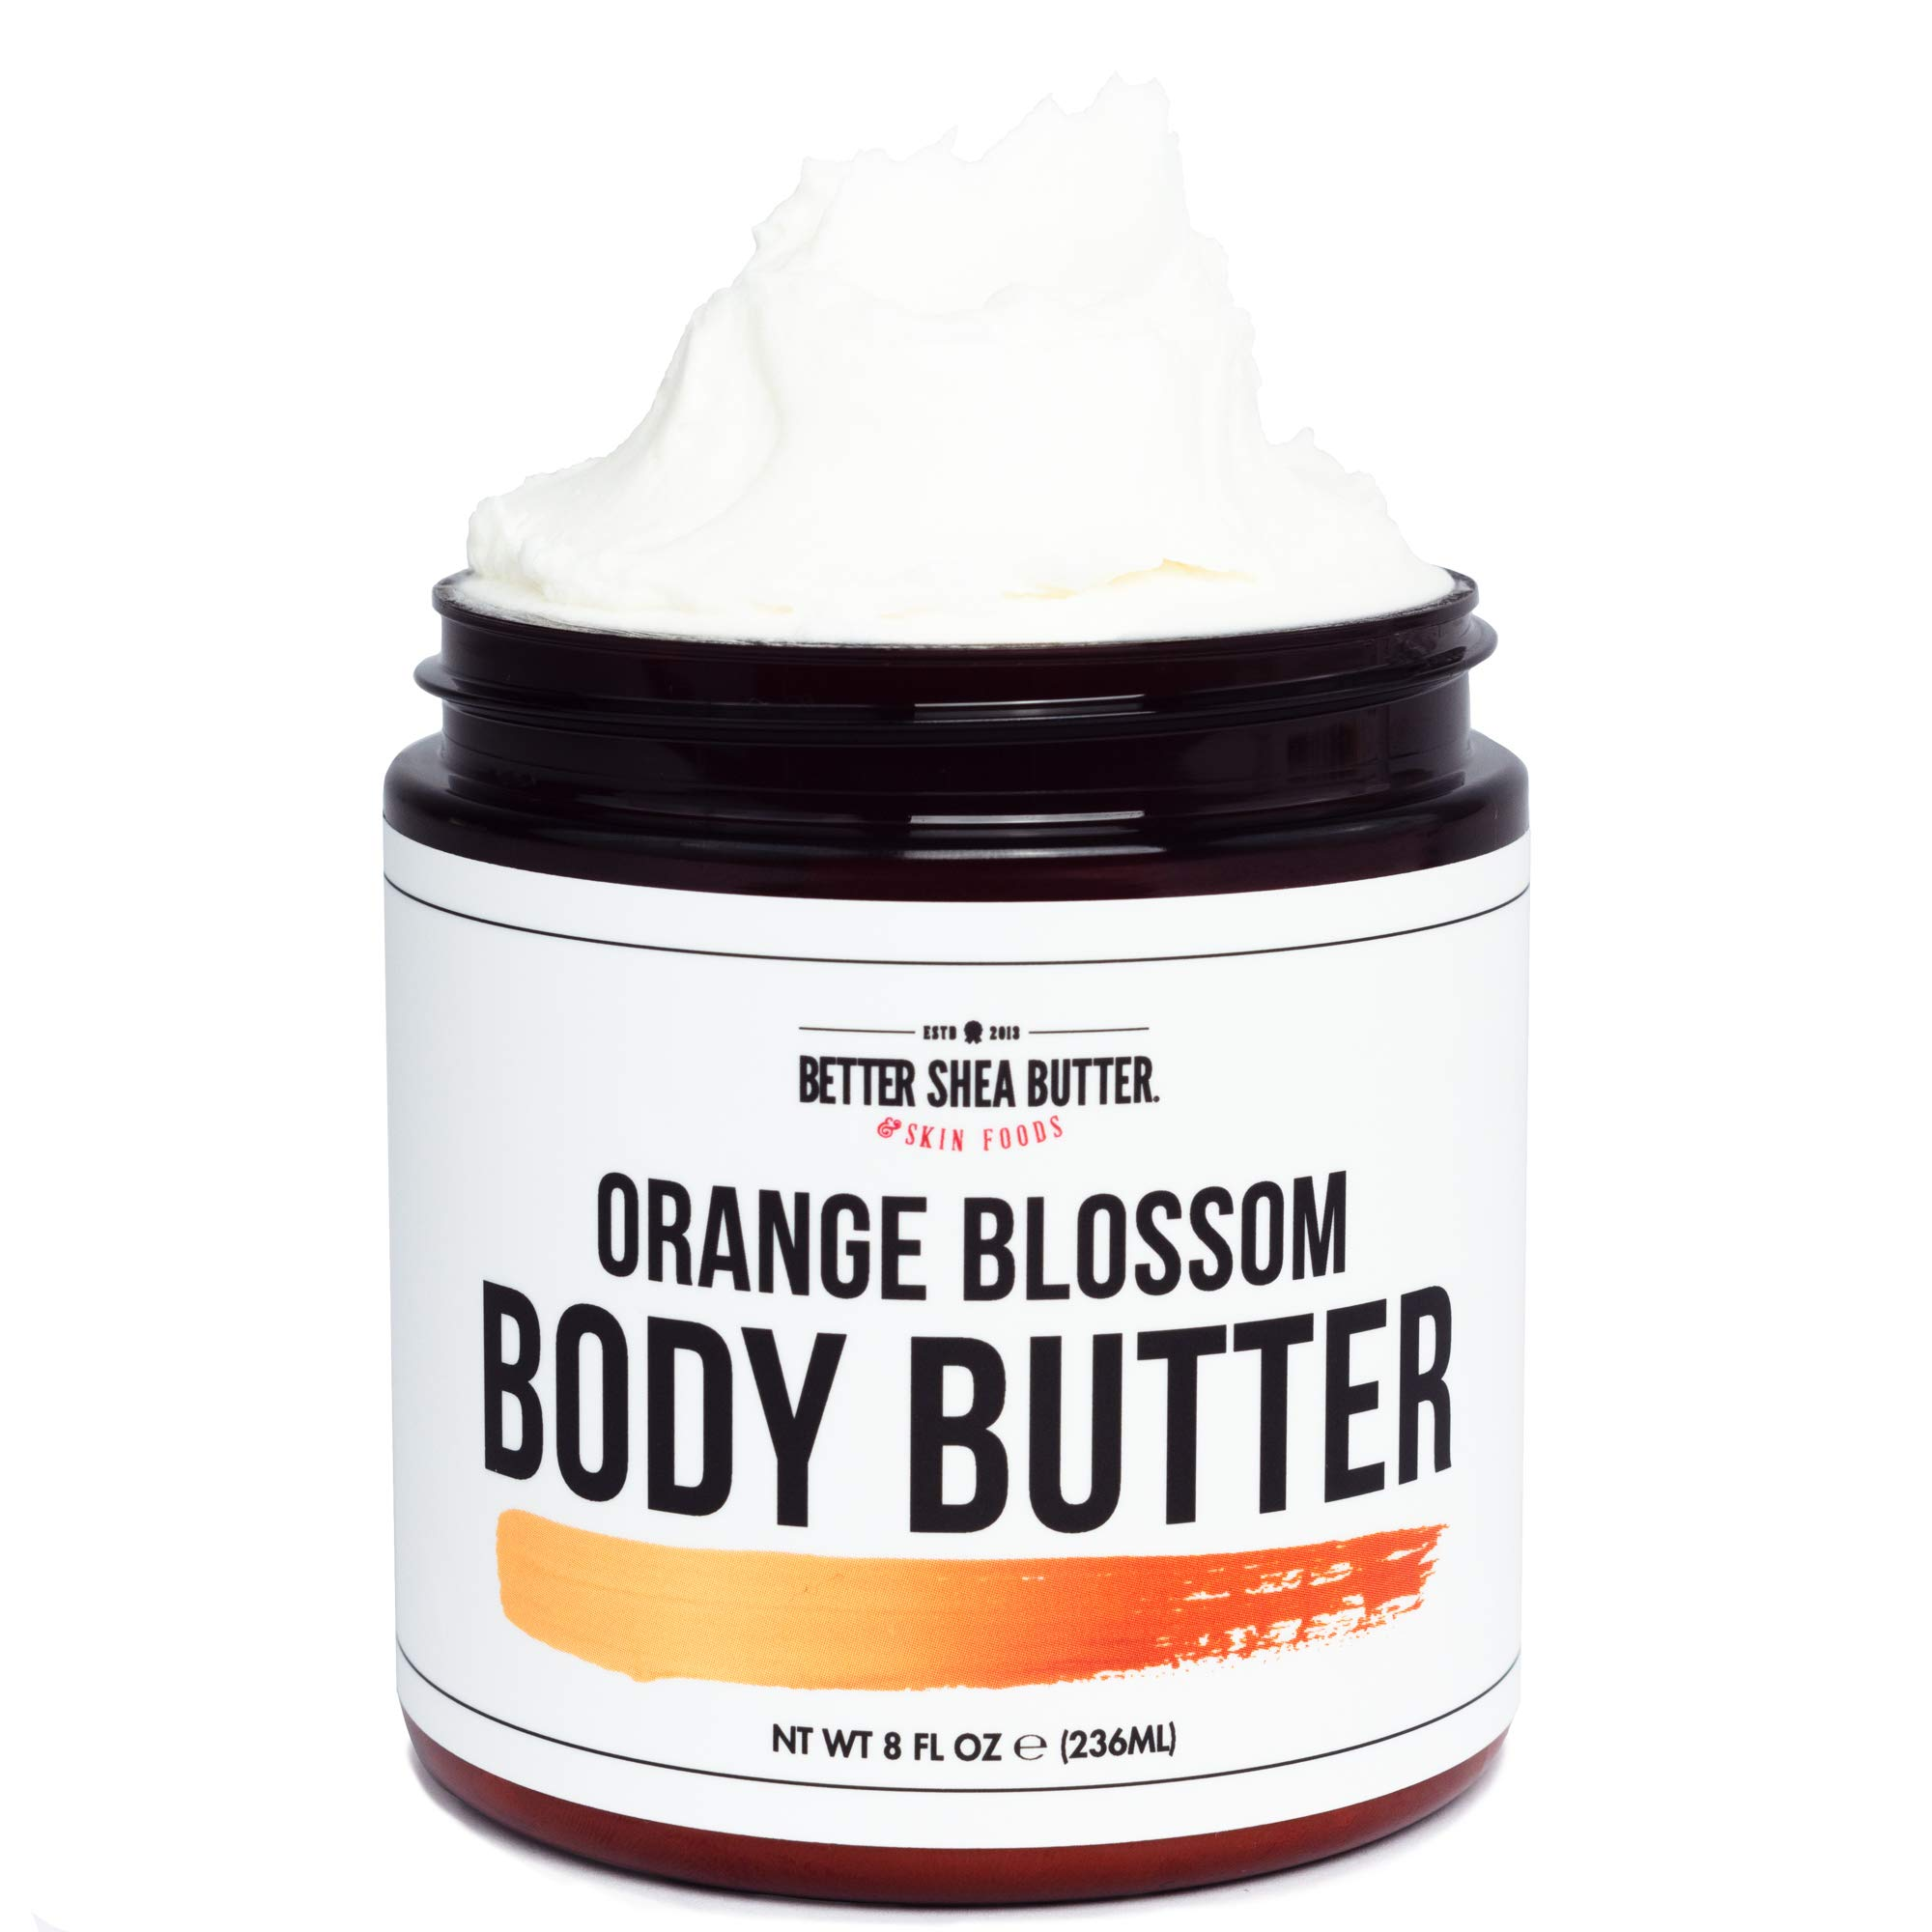 Orange Blossom Body Butter for Dry Skin - Hydrating Cream with Organic Aloe Vera, Shea Butter, and Scented with a Blend of Citrus Essential Oils - 8 oz